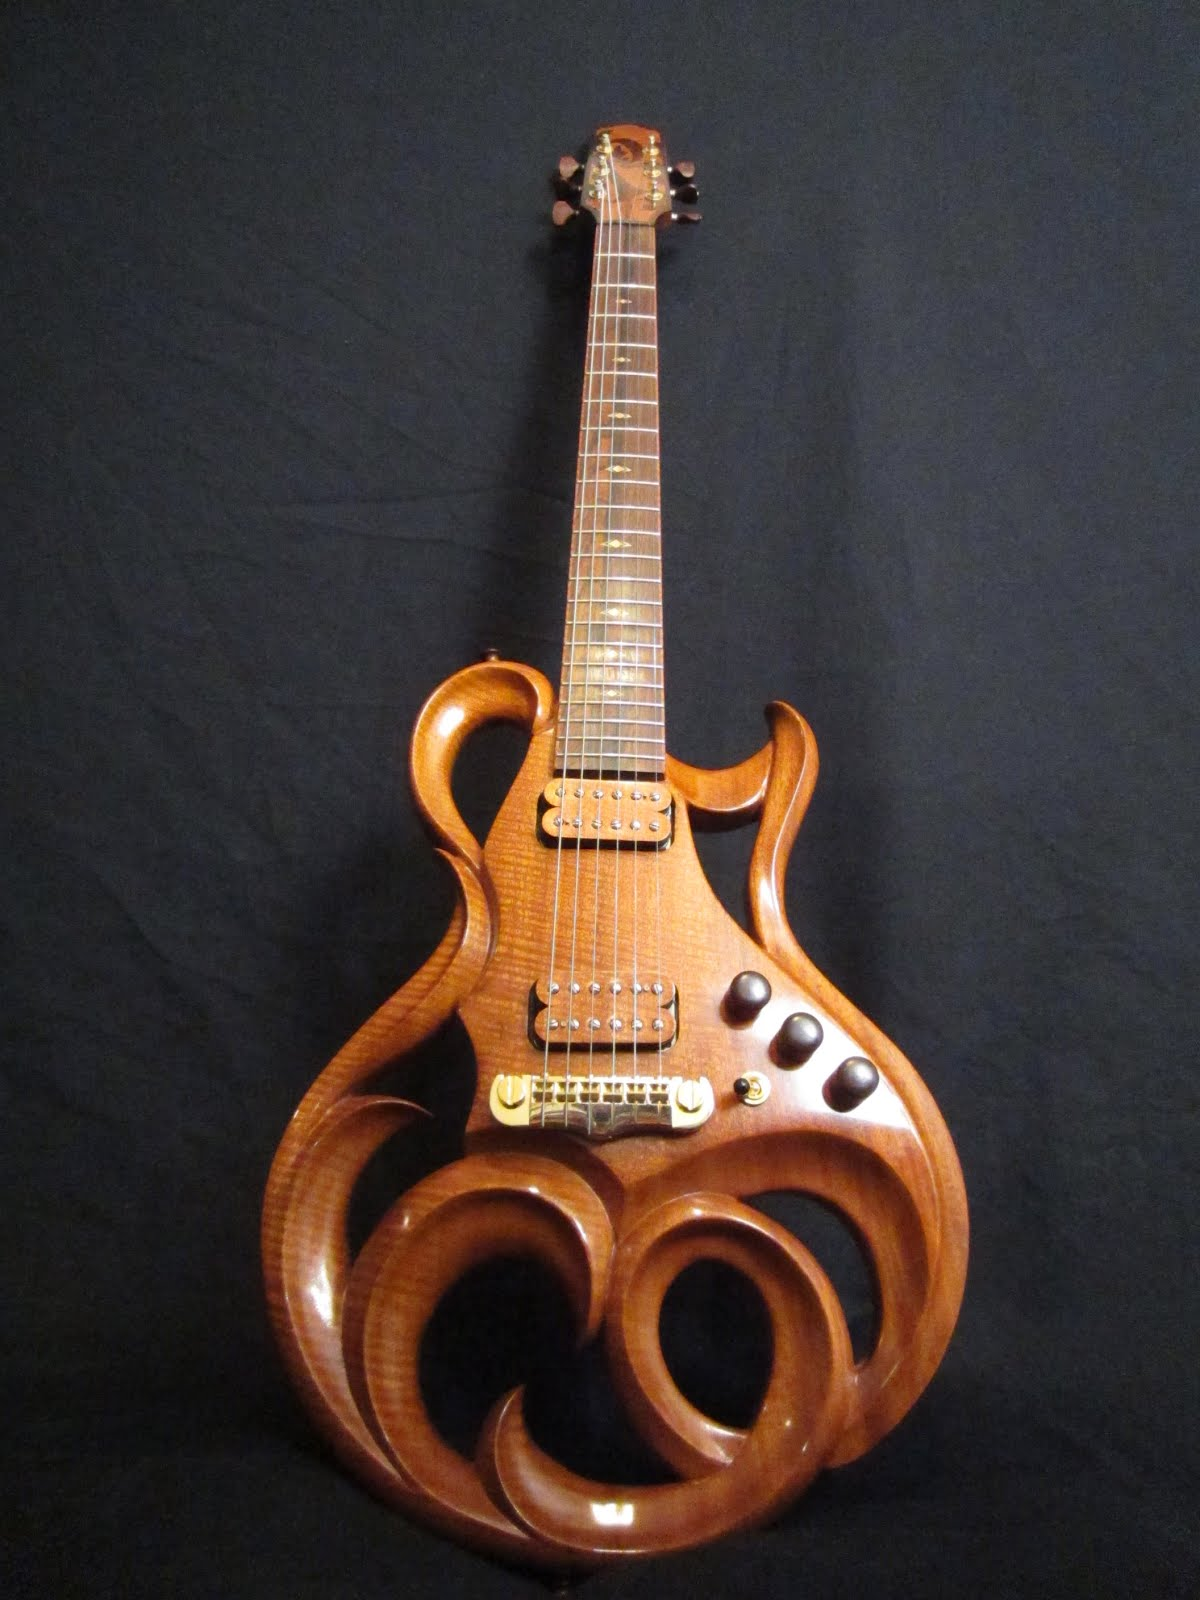 Rigaud guitars blog the beautiful hand crafted electric for Handcrafted or hand crafted